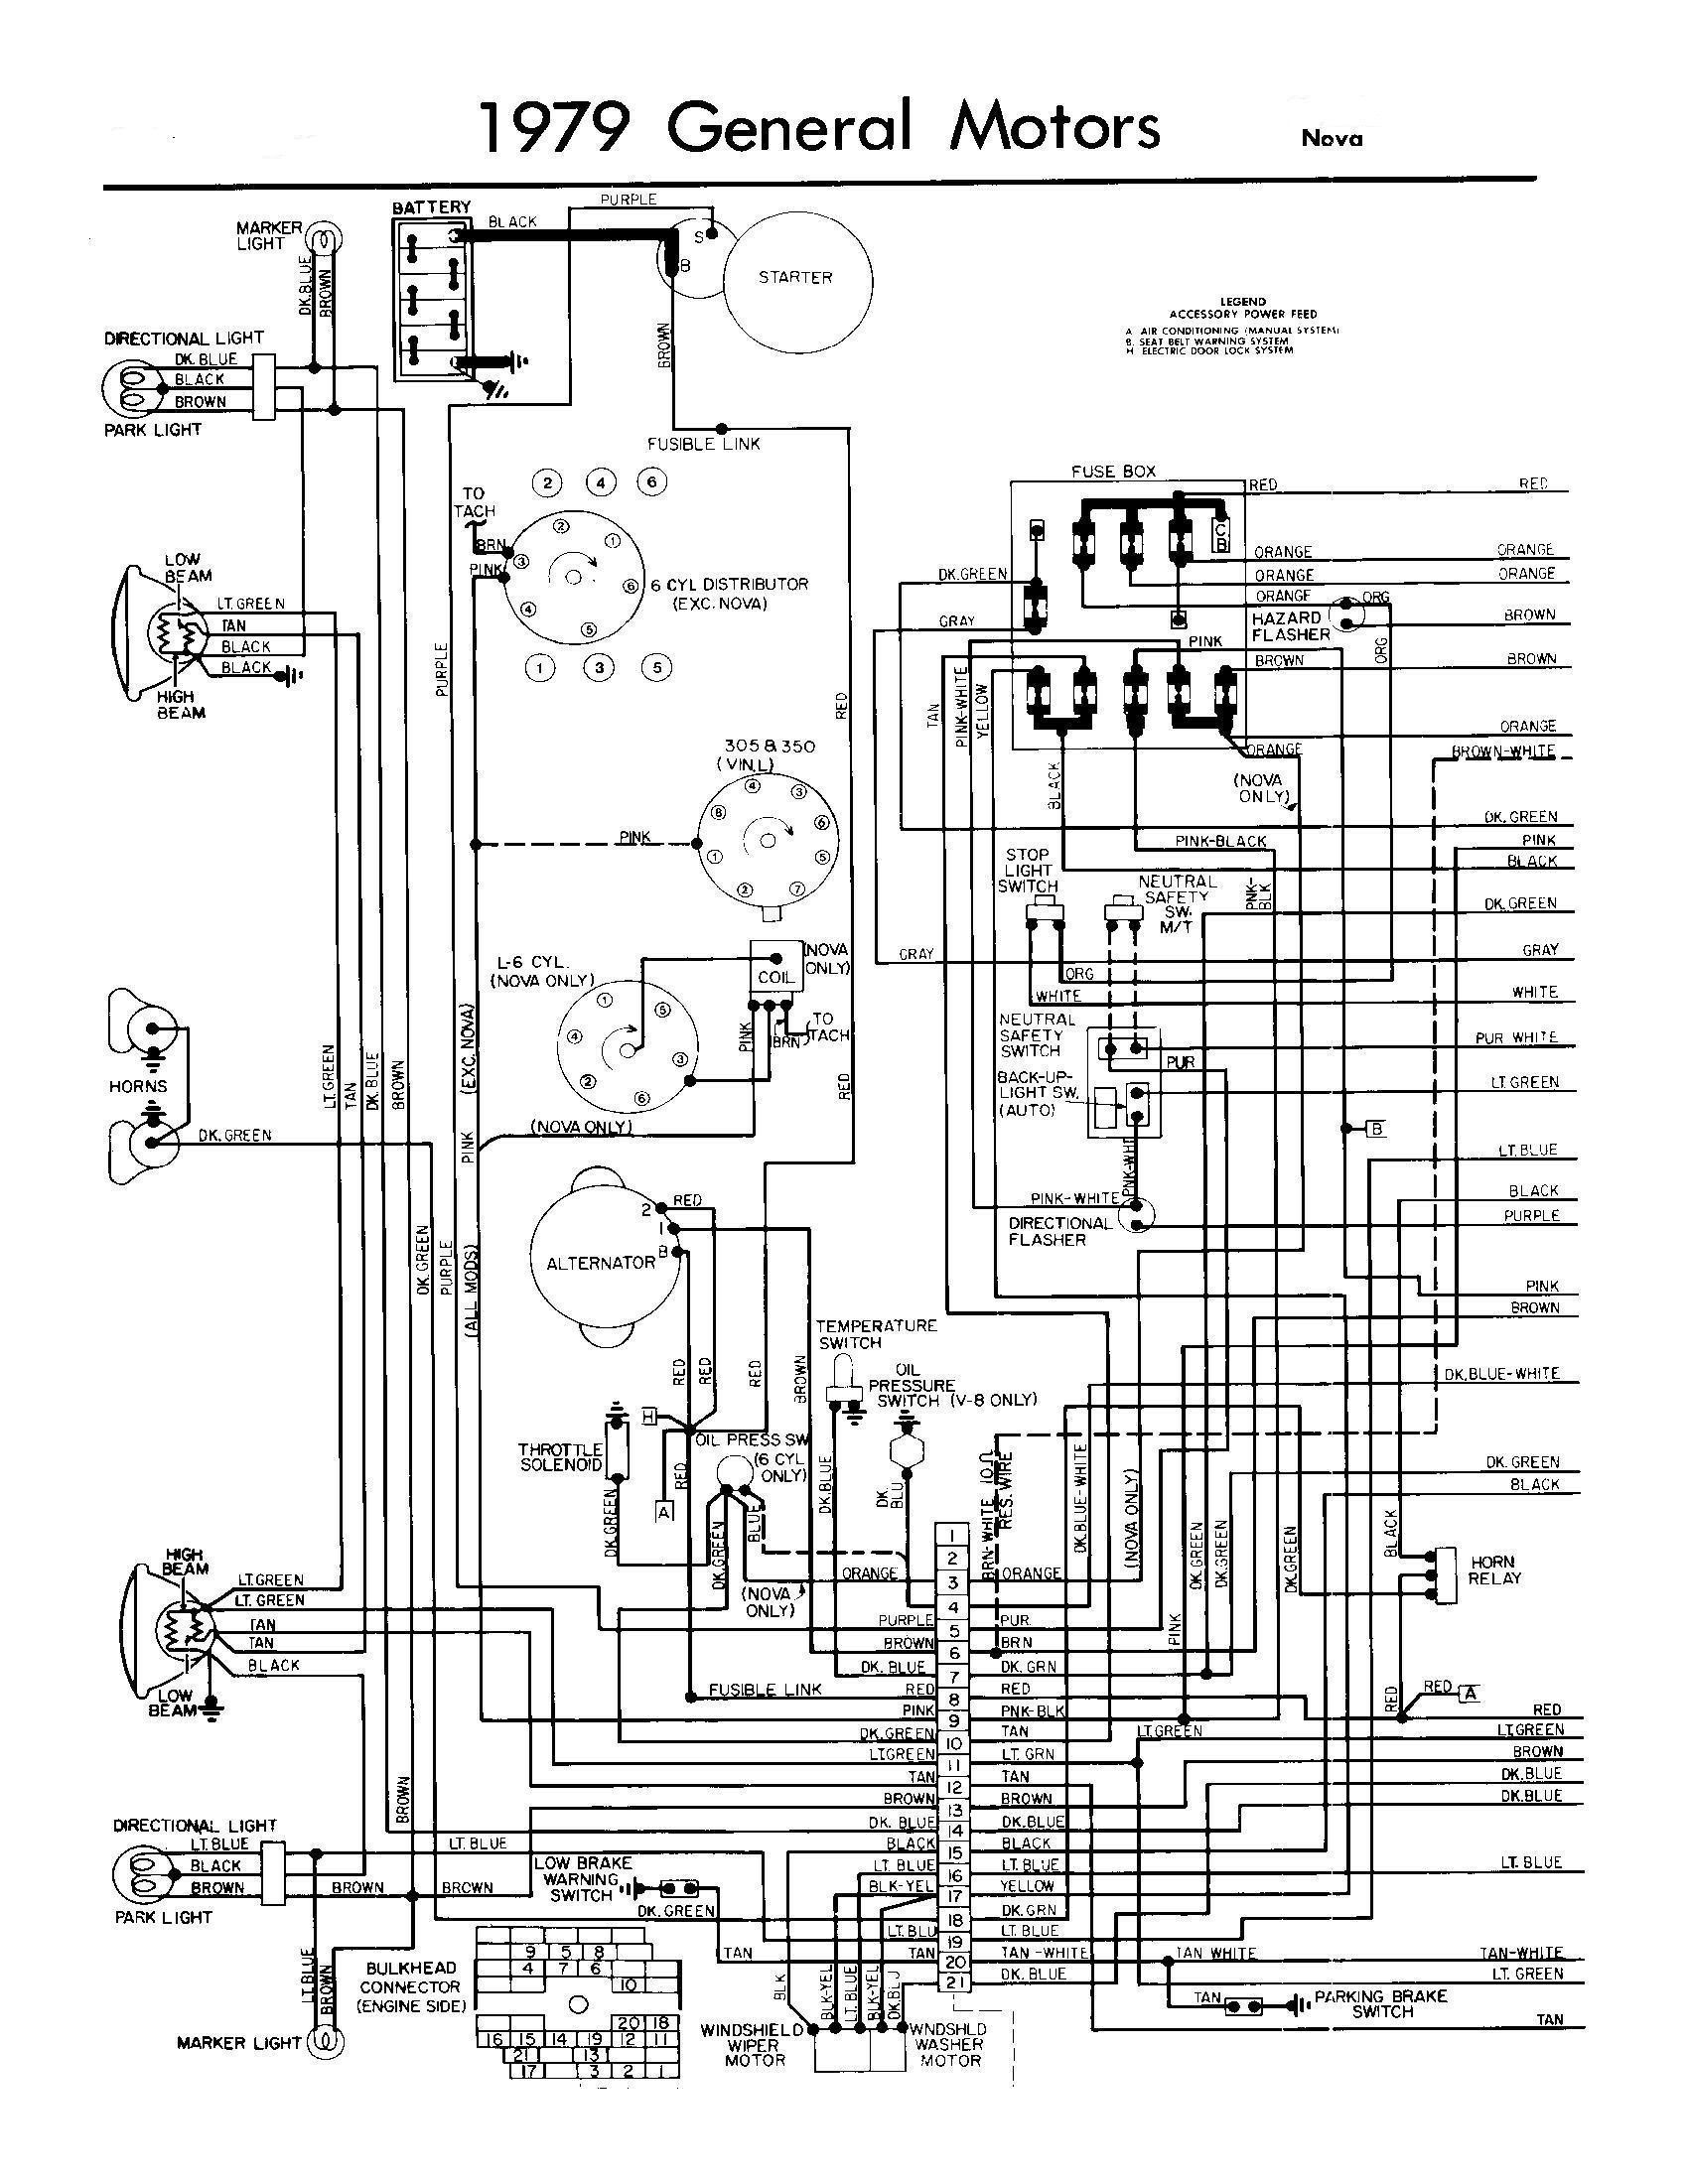 1971 chevy fuse box diagram wiring diagram1971 buick riviera fuse box wiring diagram1971 lemans fuse box index listing of wiring diagrams1971 pontiac